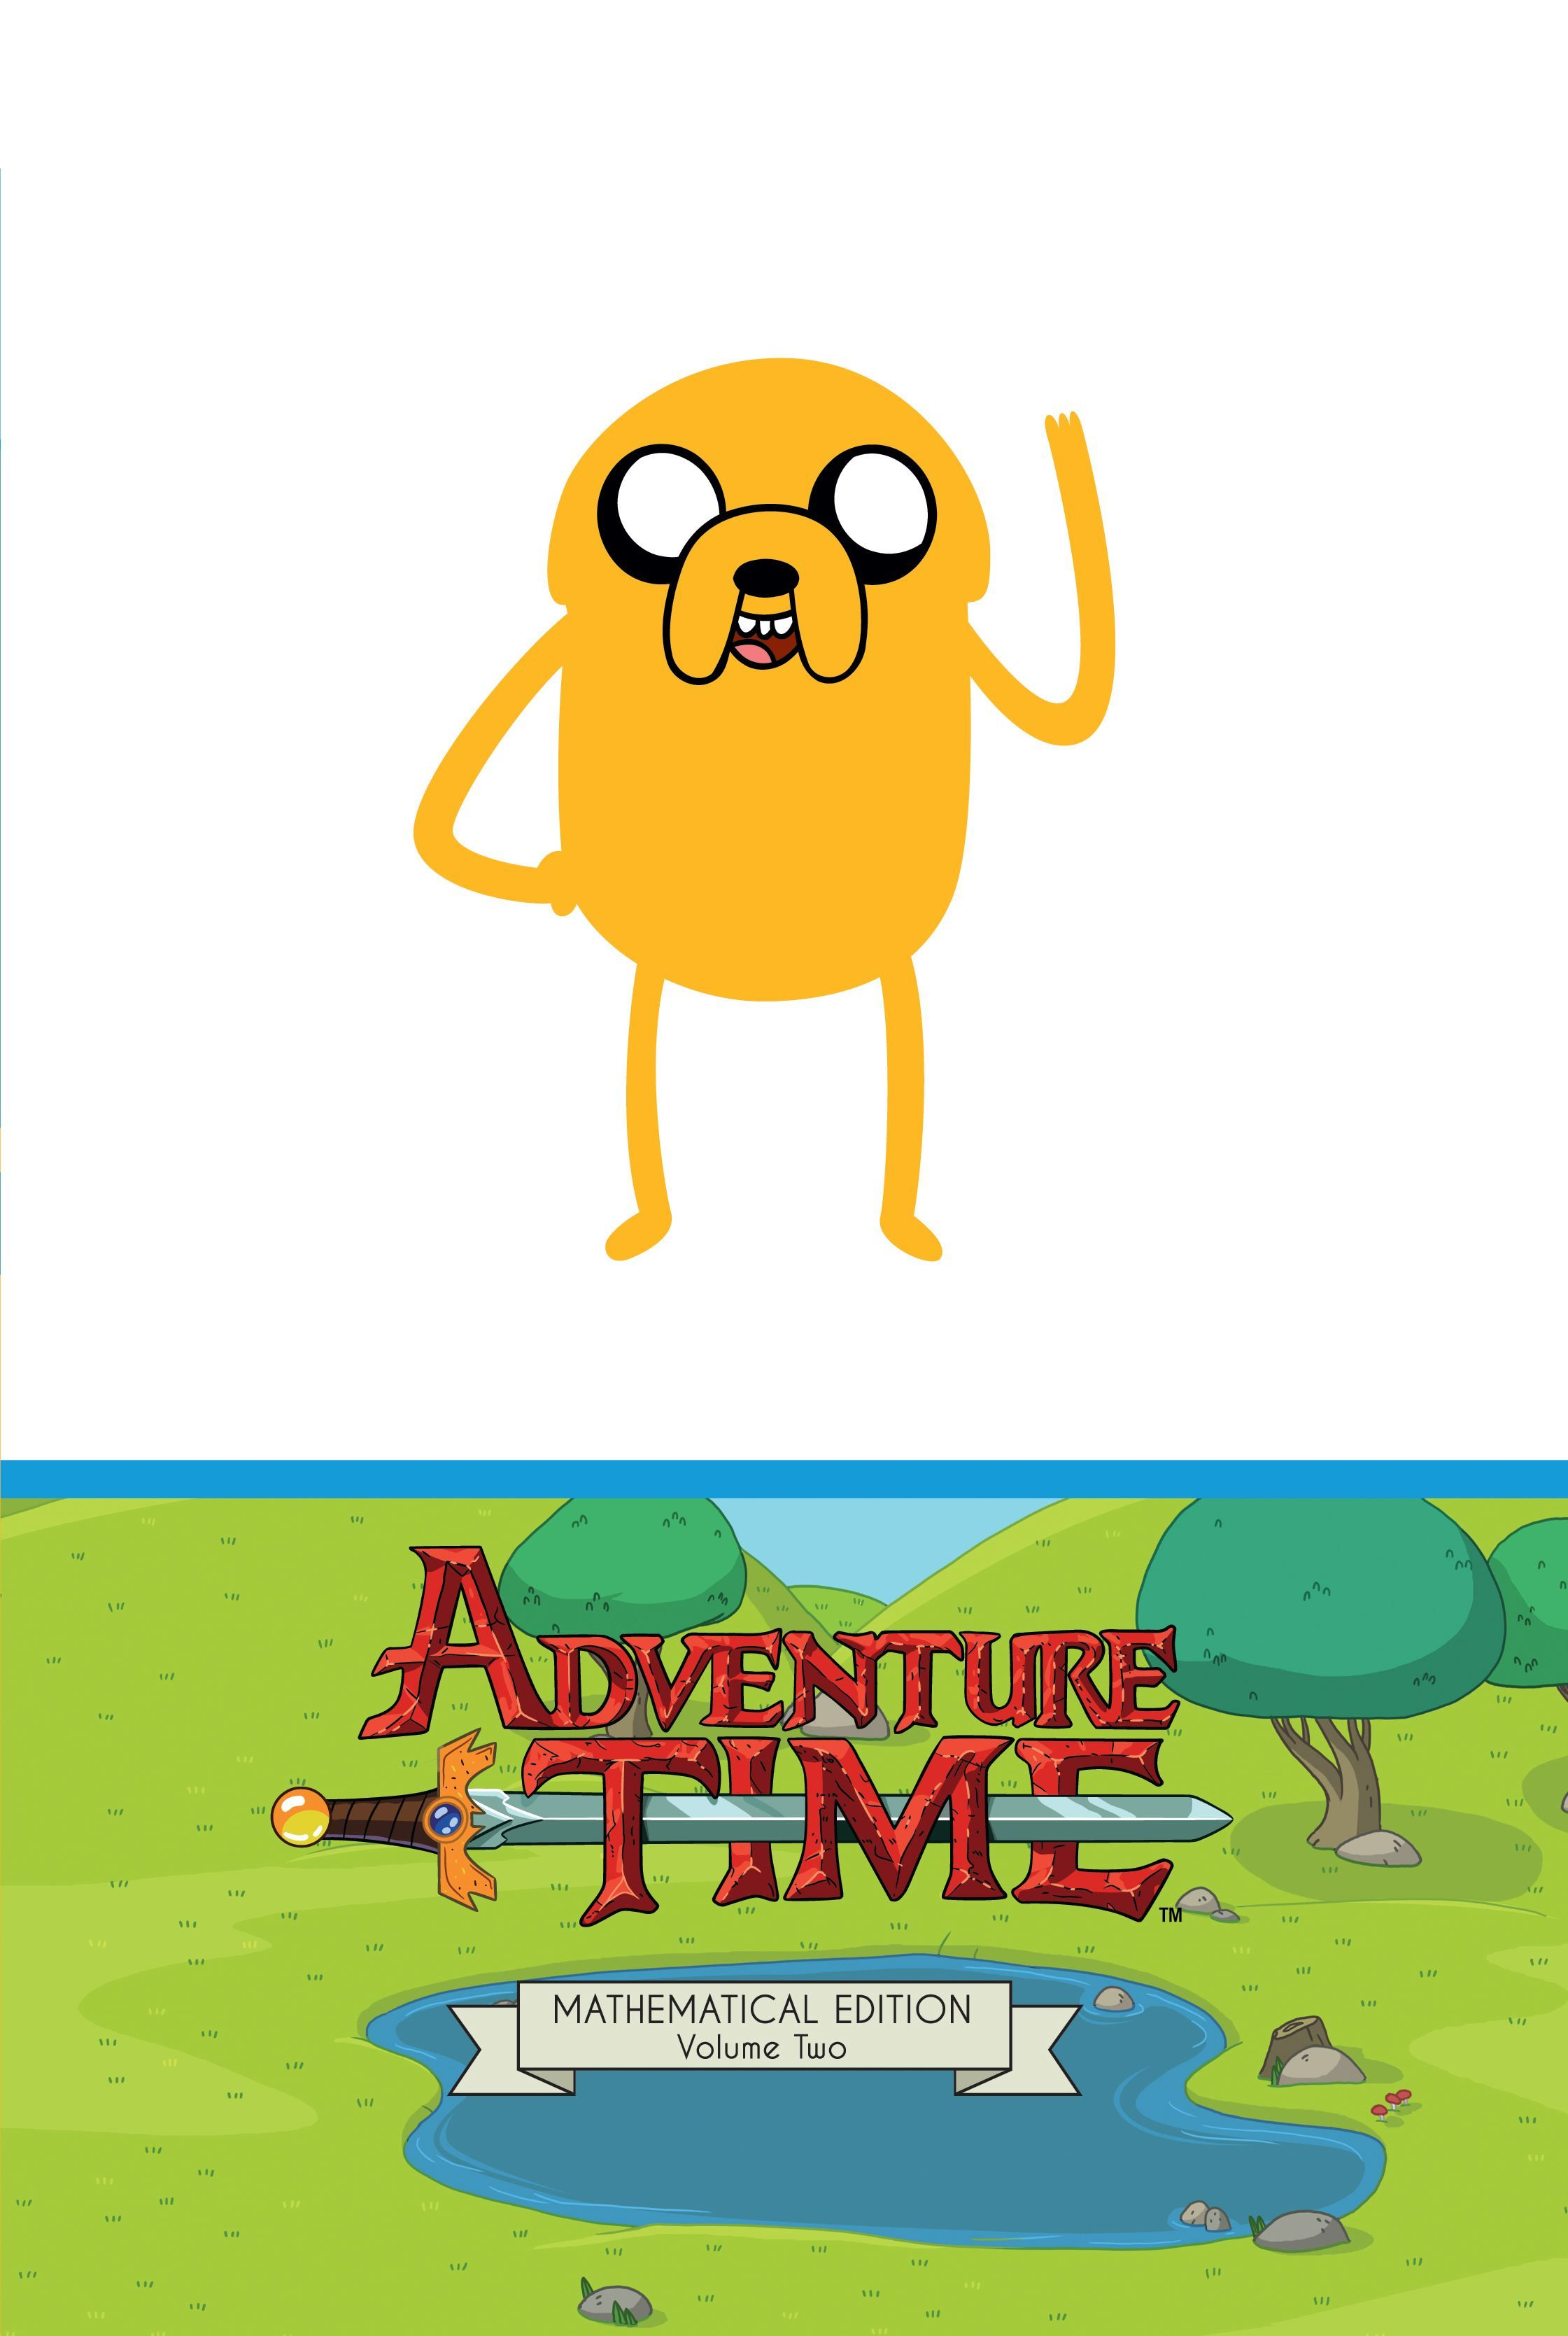 Adventure time mathematical edition 2 adventure time